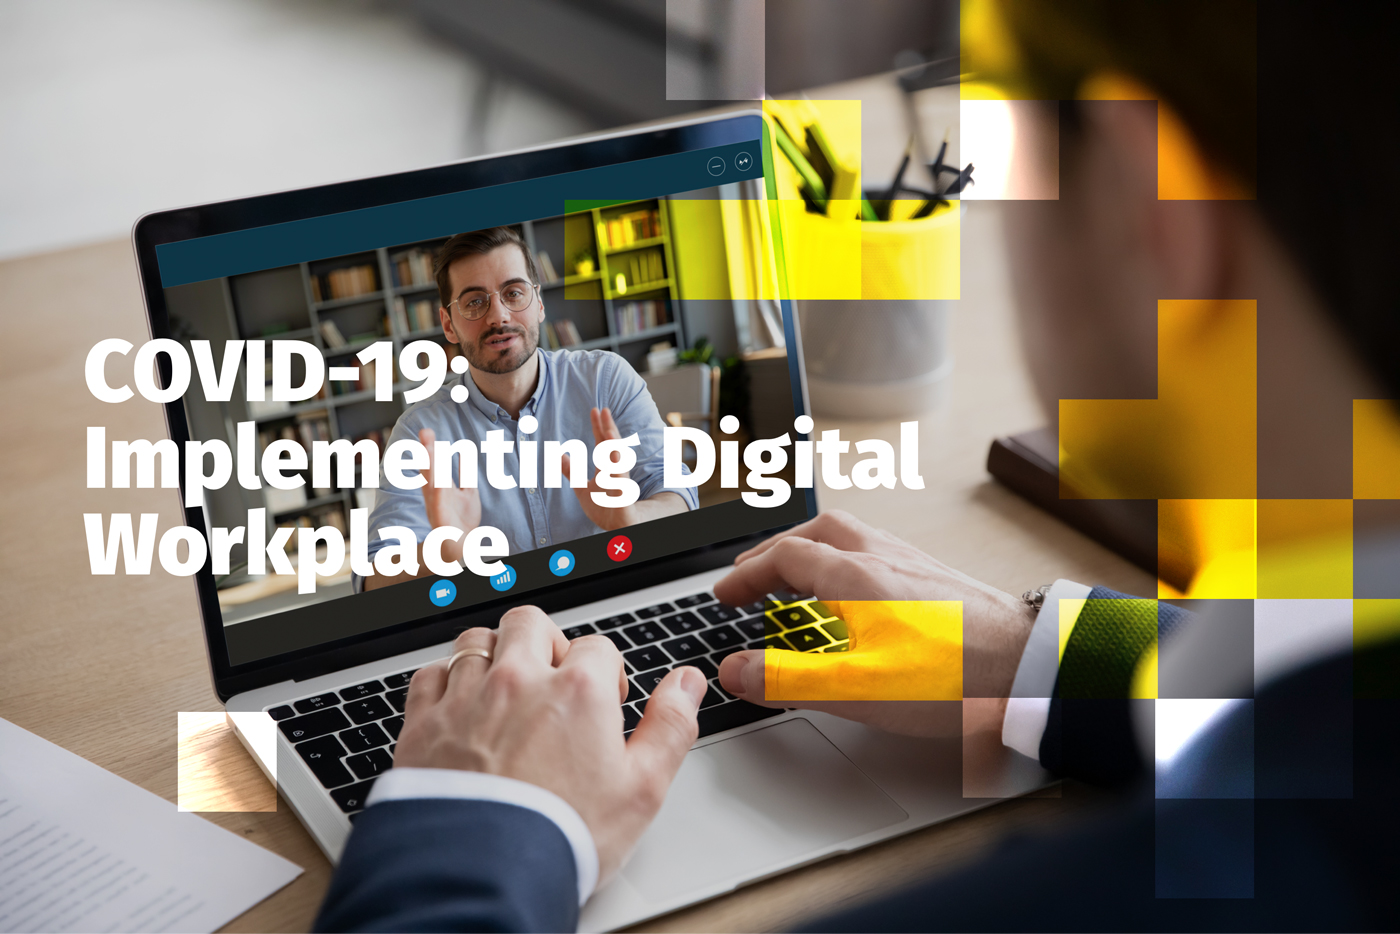 COVID-19-Implementing Digital Workplace